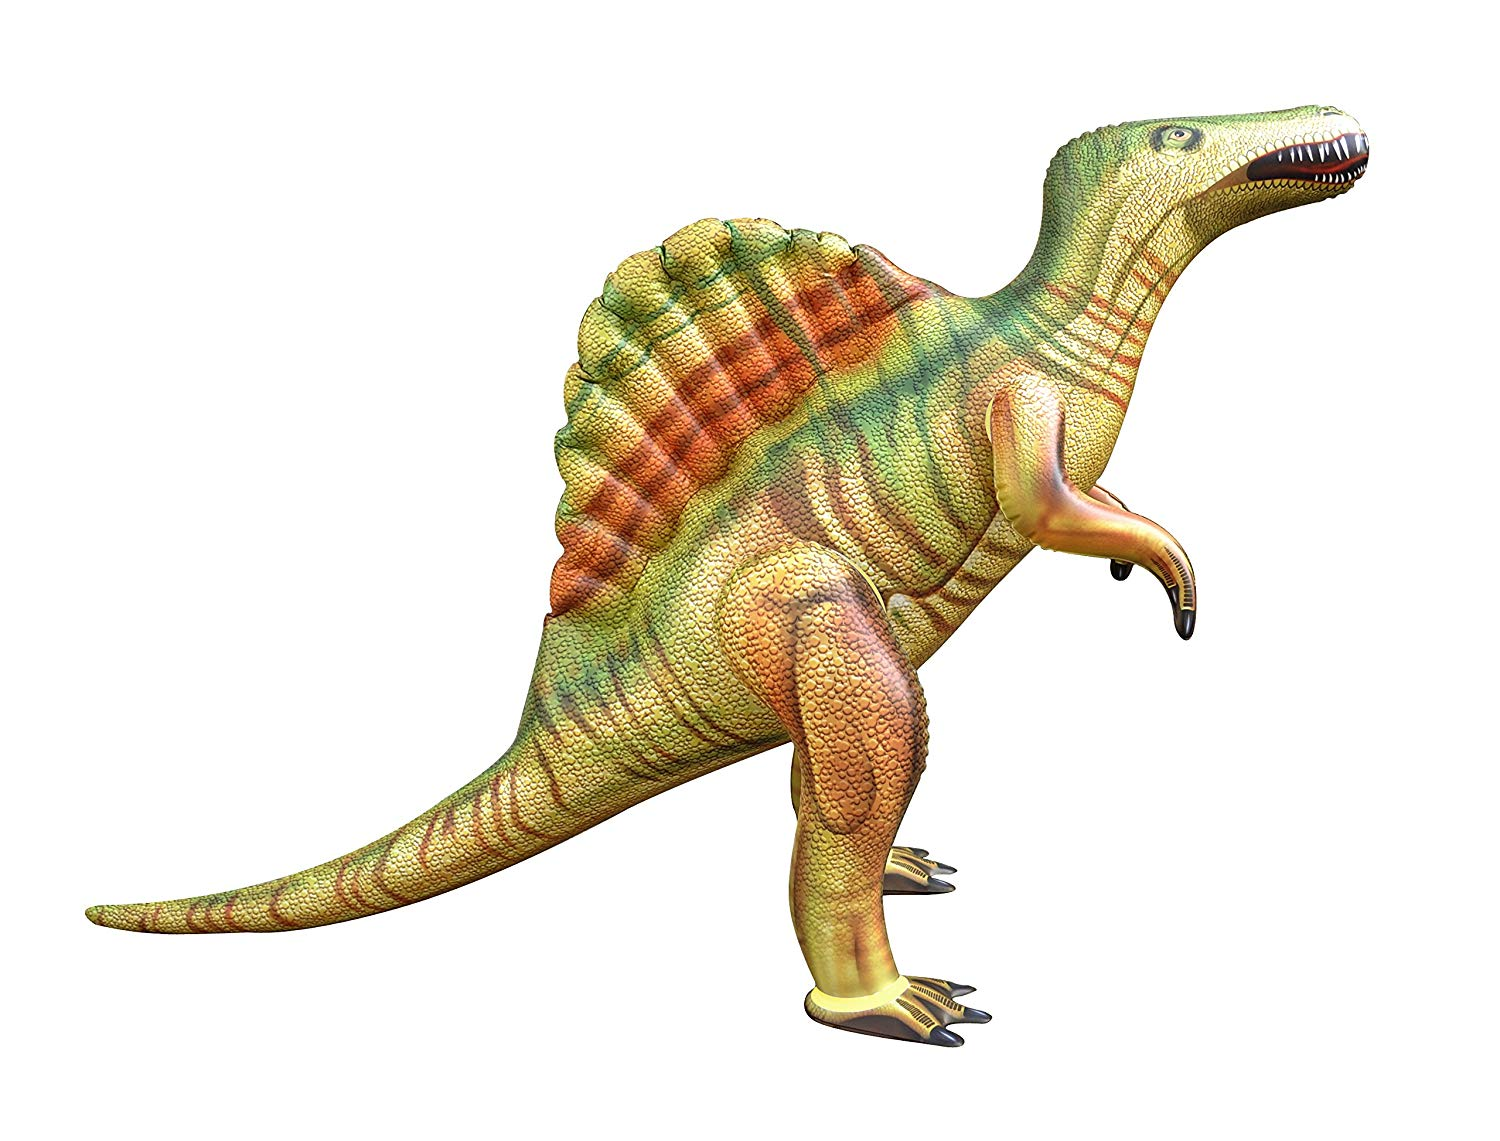 Jet Creations DI-Spino Inflatable Spinosaurus Dinosaur 53 inch- Great for Pool, Party Decoration, Birthday for Kids and Adults